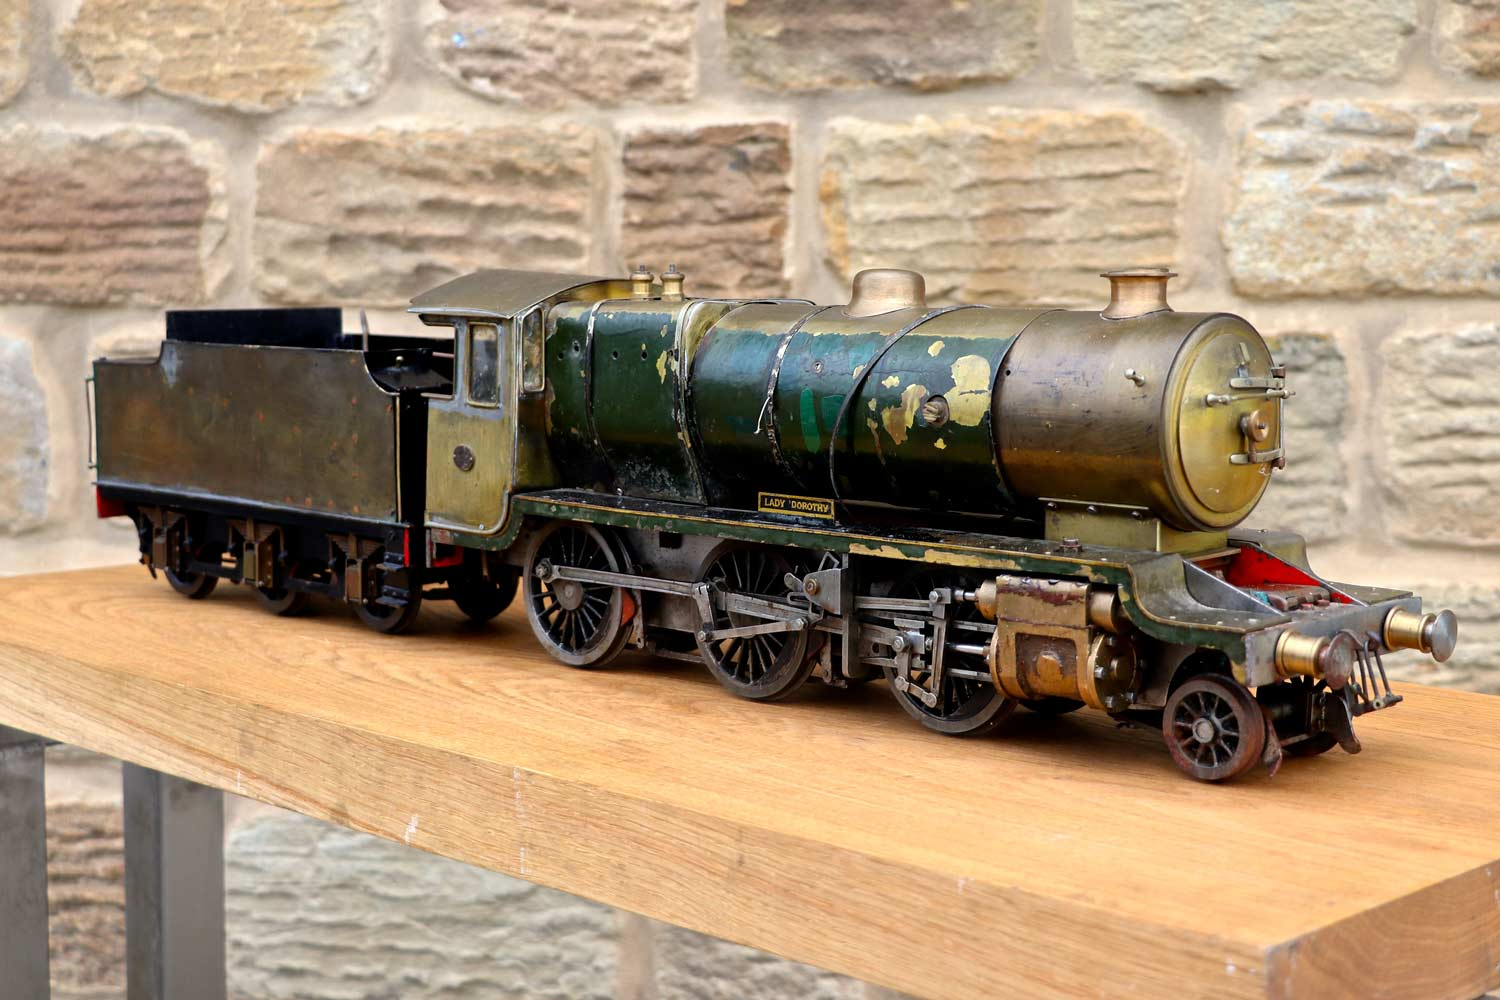 test 2-and-a-half-inch-gauge-LBSC-Lady-Dorothy-DYAK-live-steam-locomotive-for-sale-09